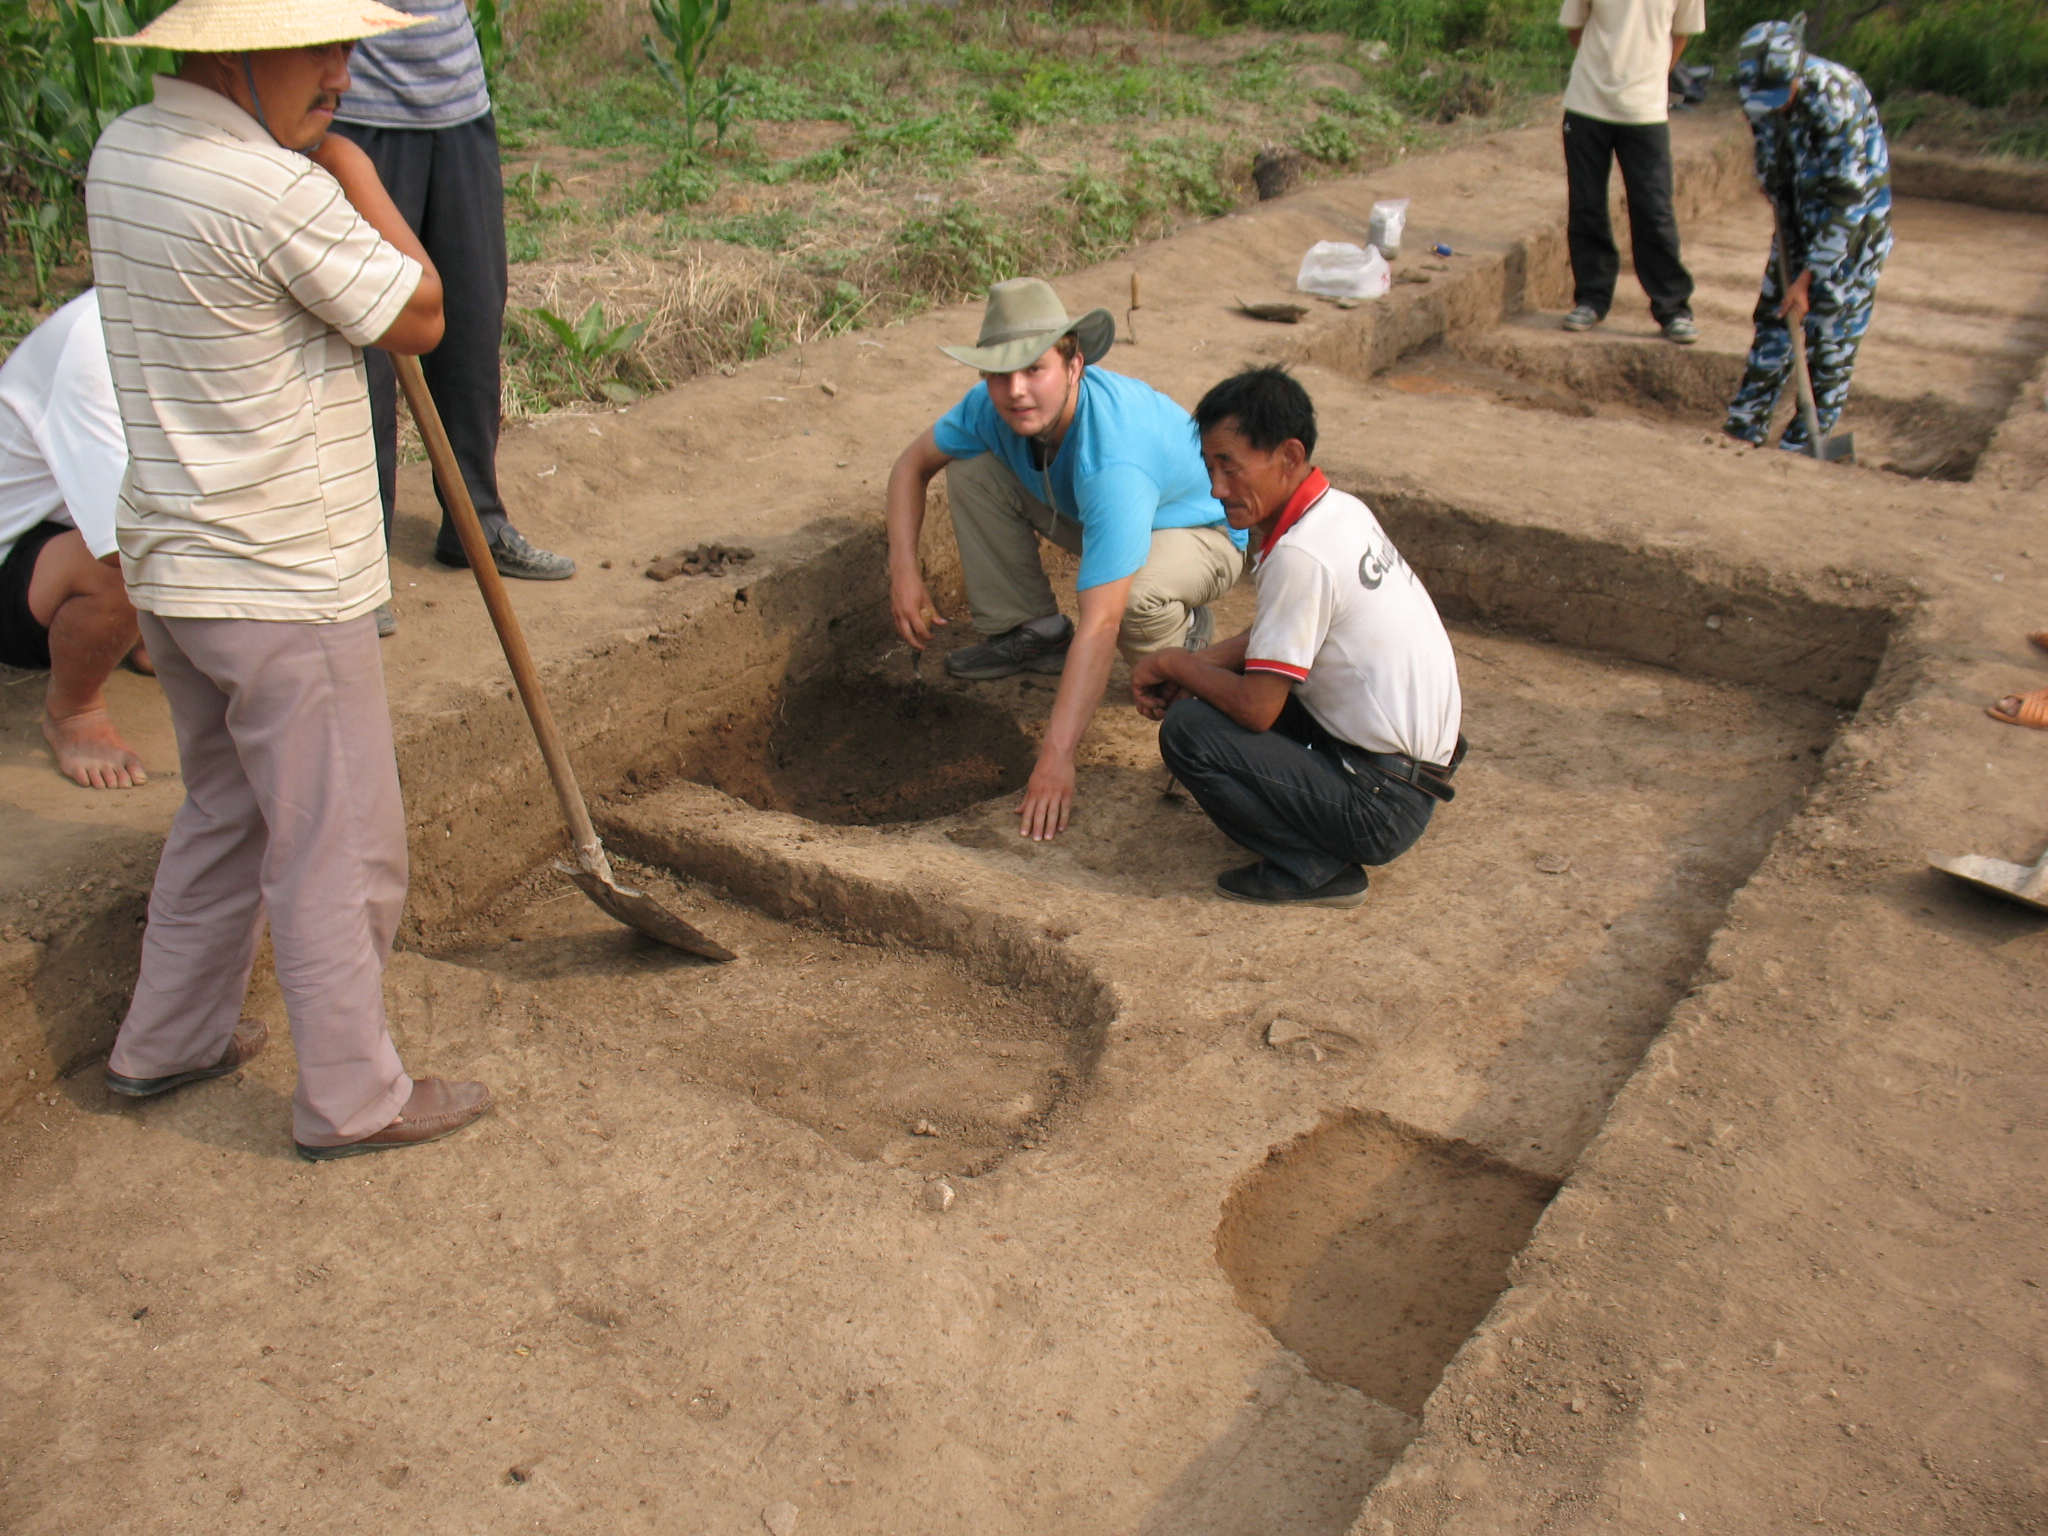 How long would it take for a Phd in Archaeology?